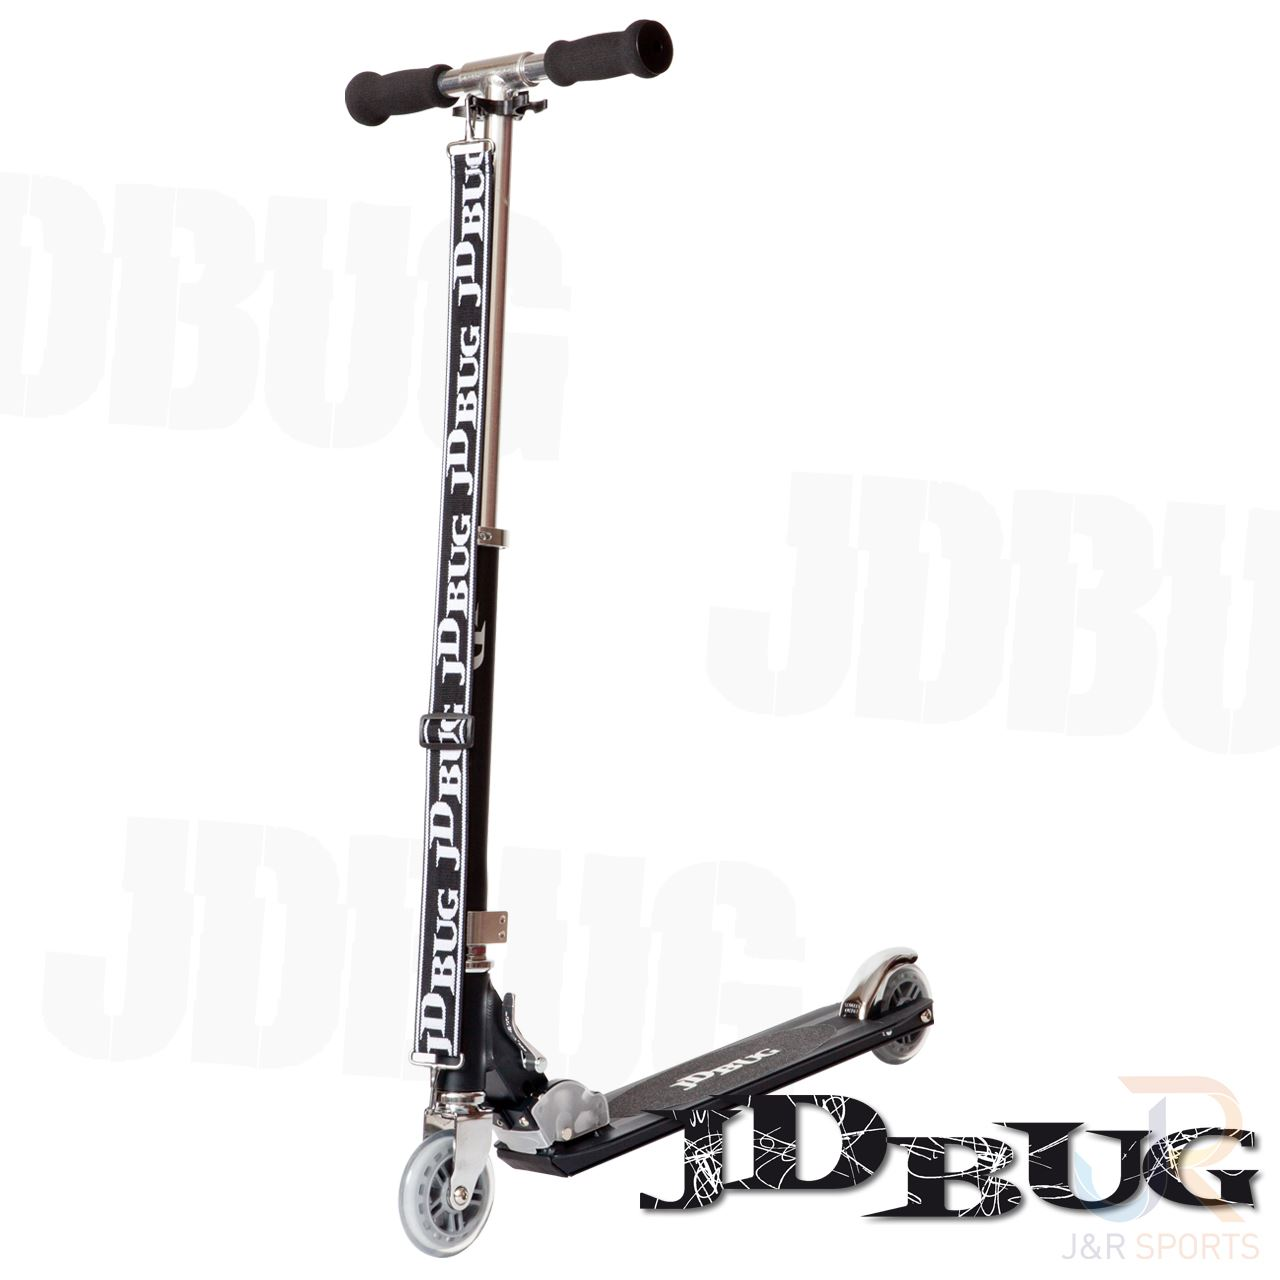 Trottinette MS130 Noire - JD BUG